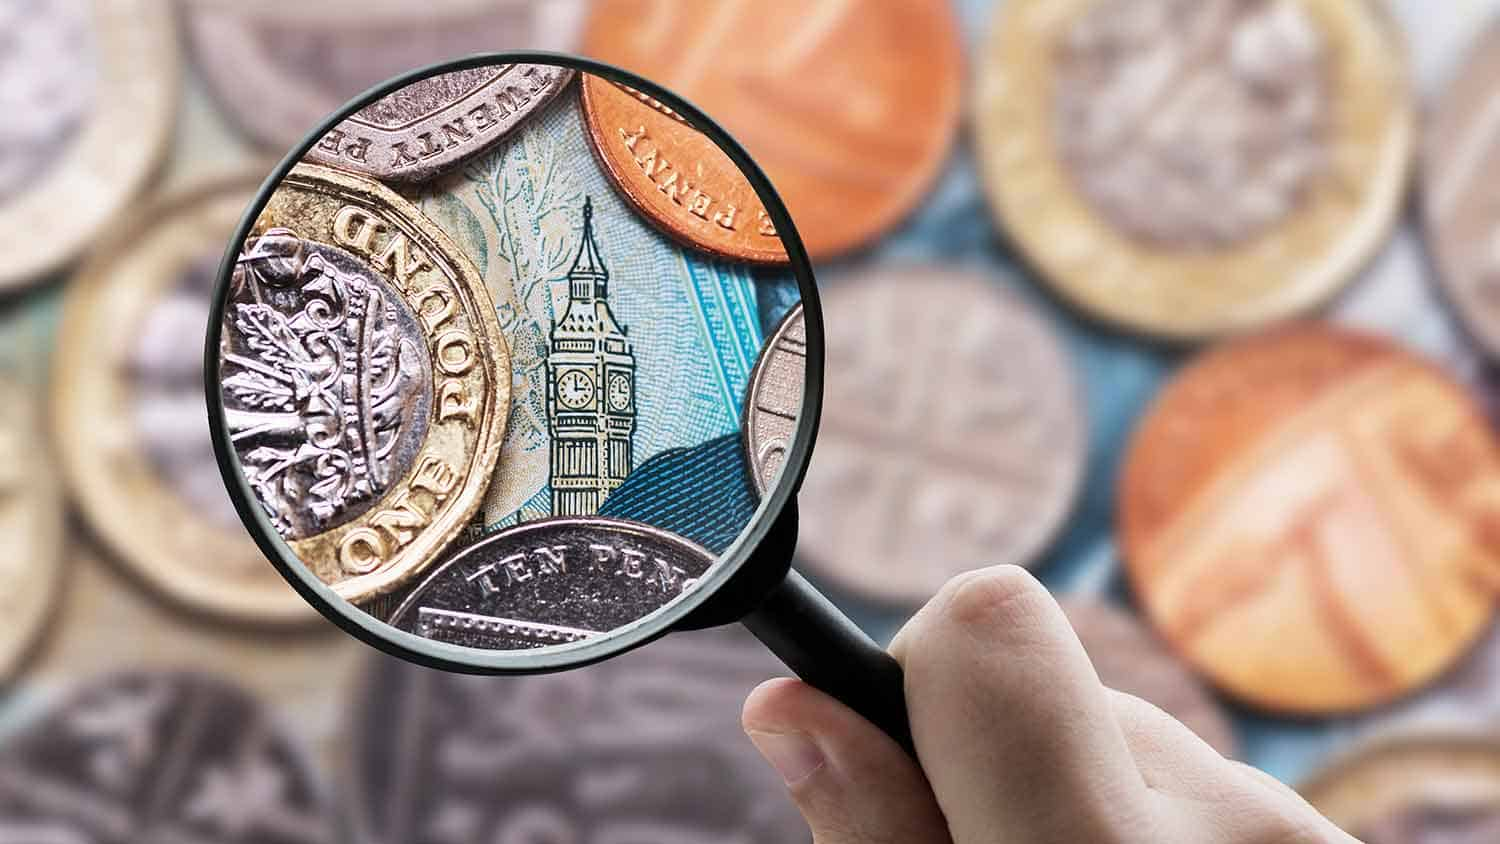 Magnifying glass looking closely at a five pound note